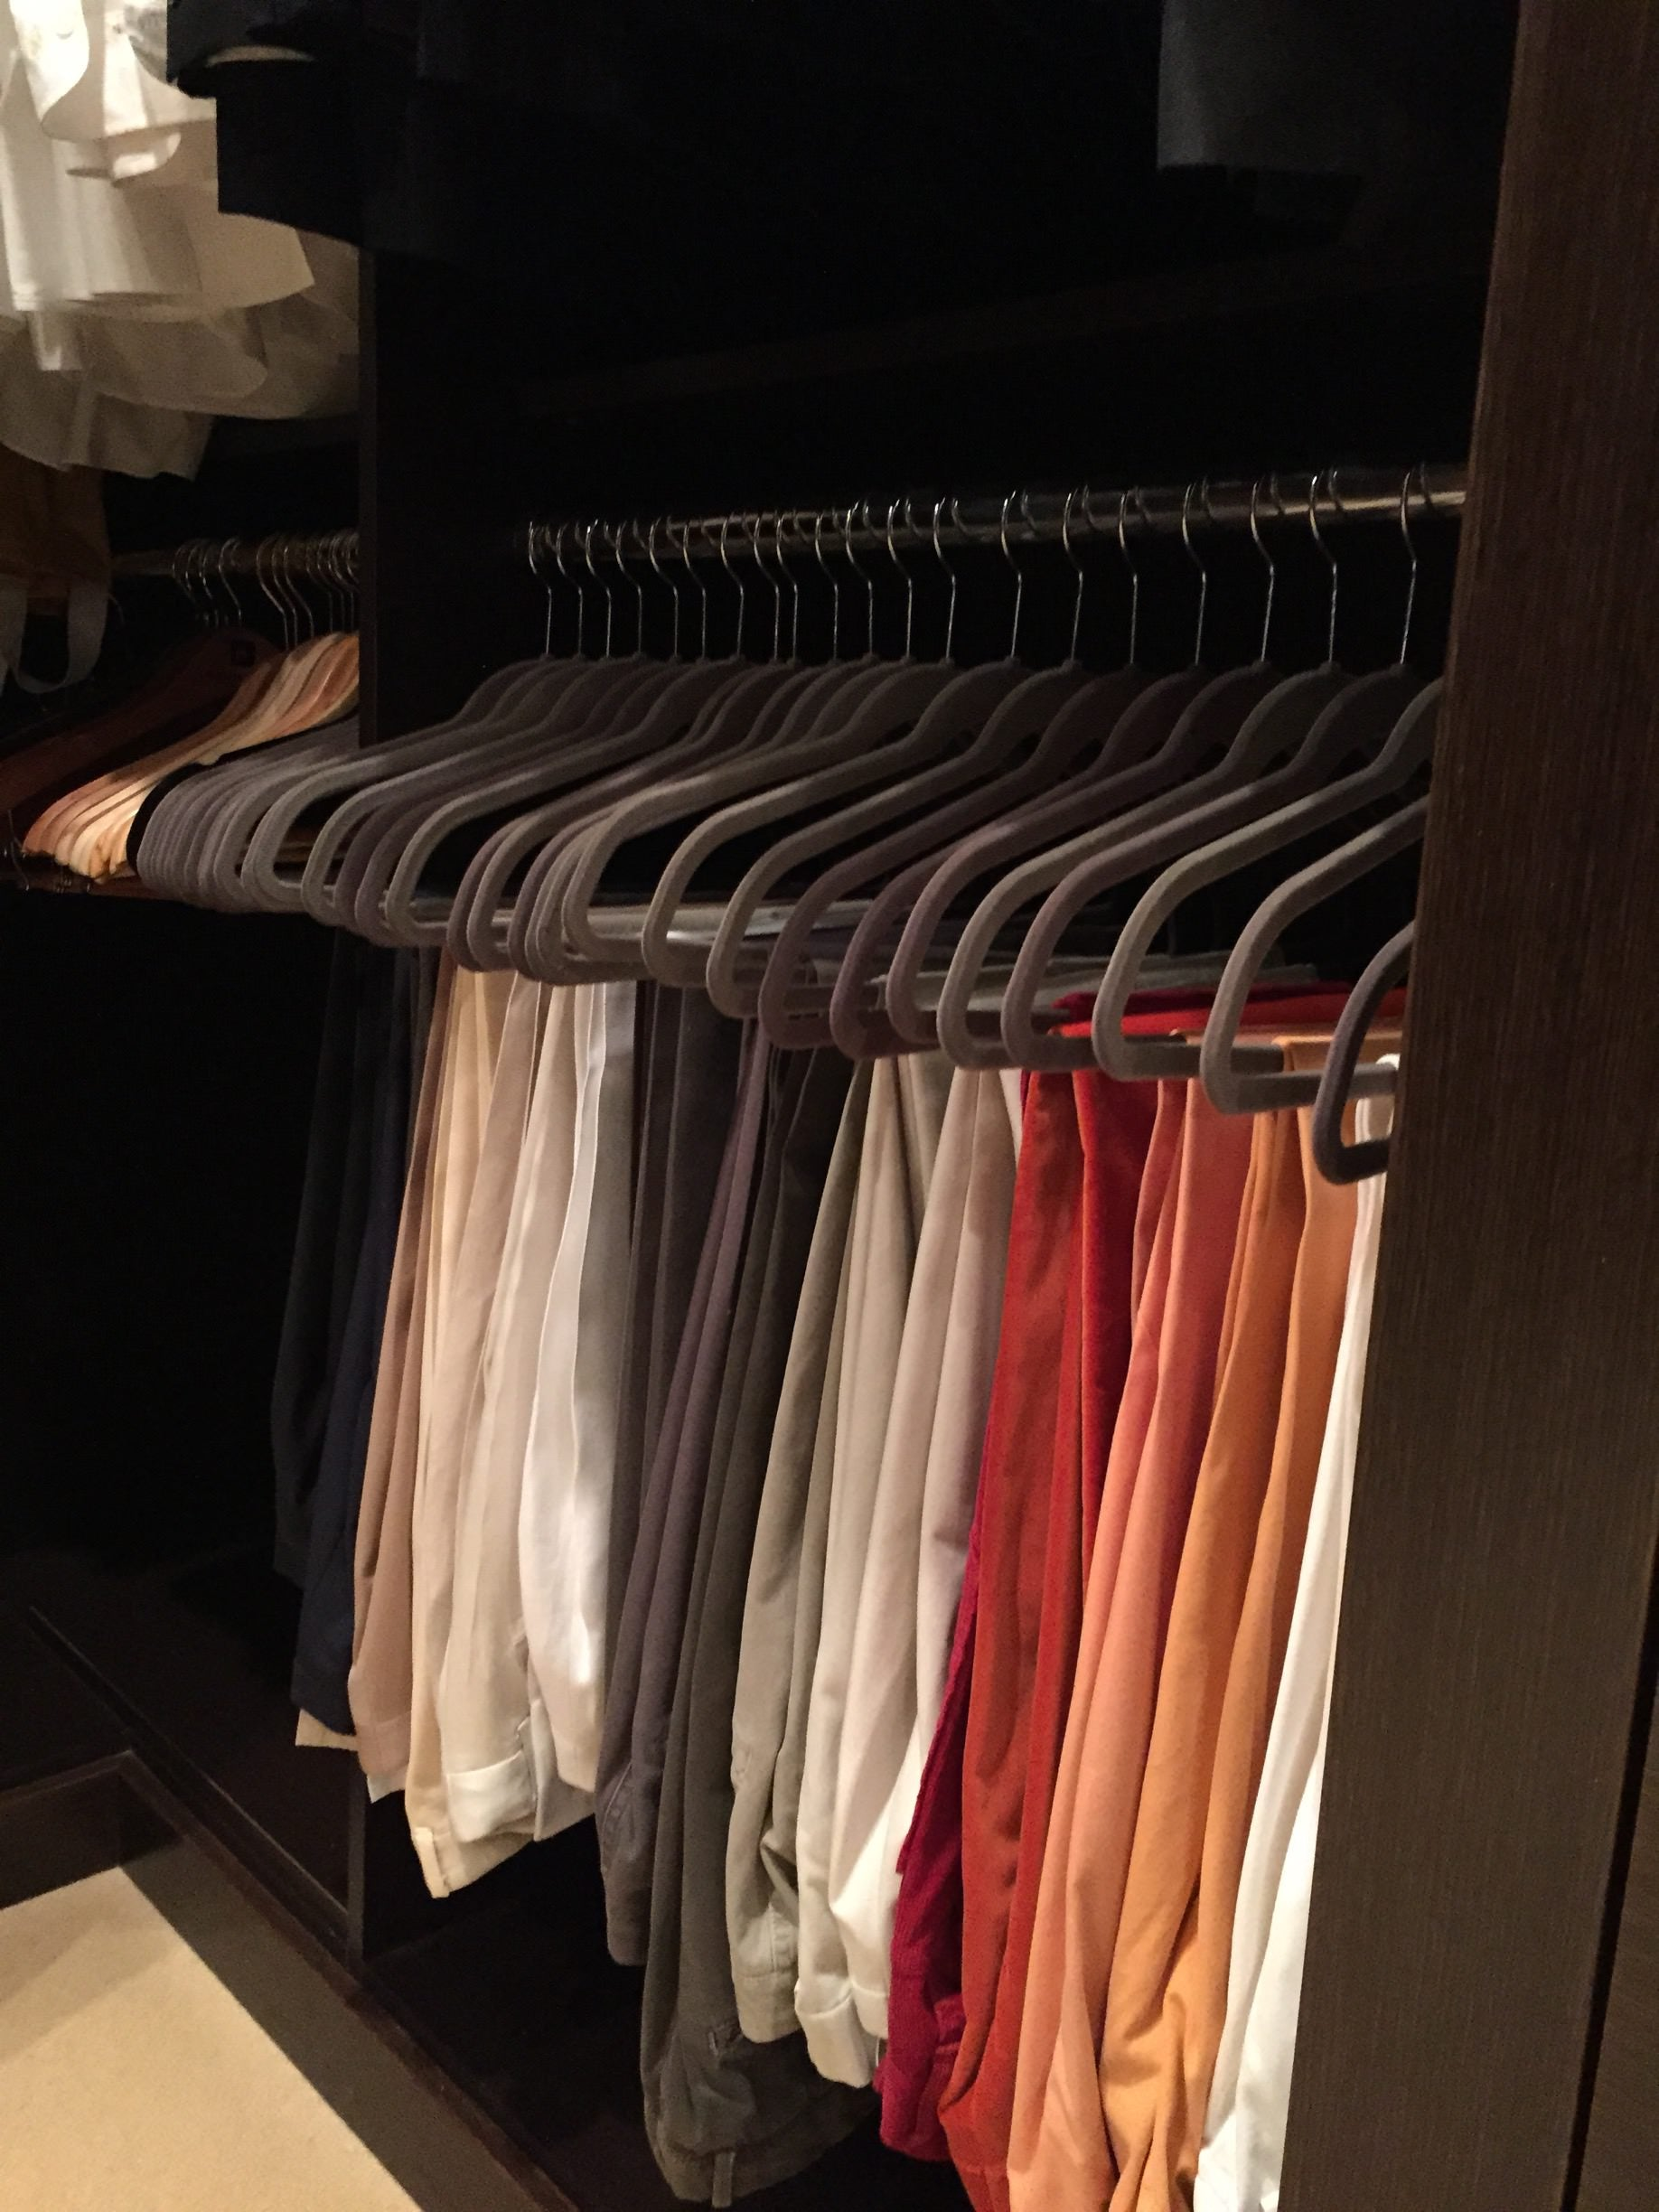 neat method, organizing, professional organizing, home organization, home style, budget, DIY, home decor, style, california closets, closet, master closet, container store, ROY G BIV, Color coded, pants, luxury, luxury home